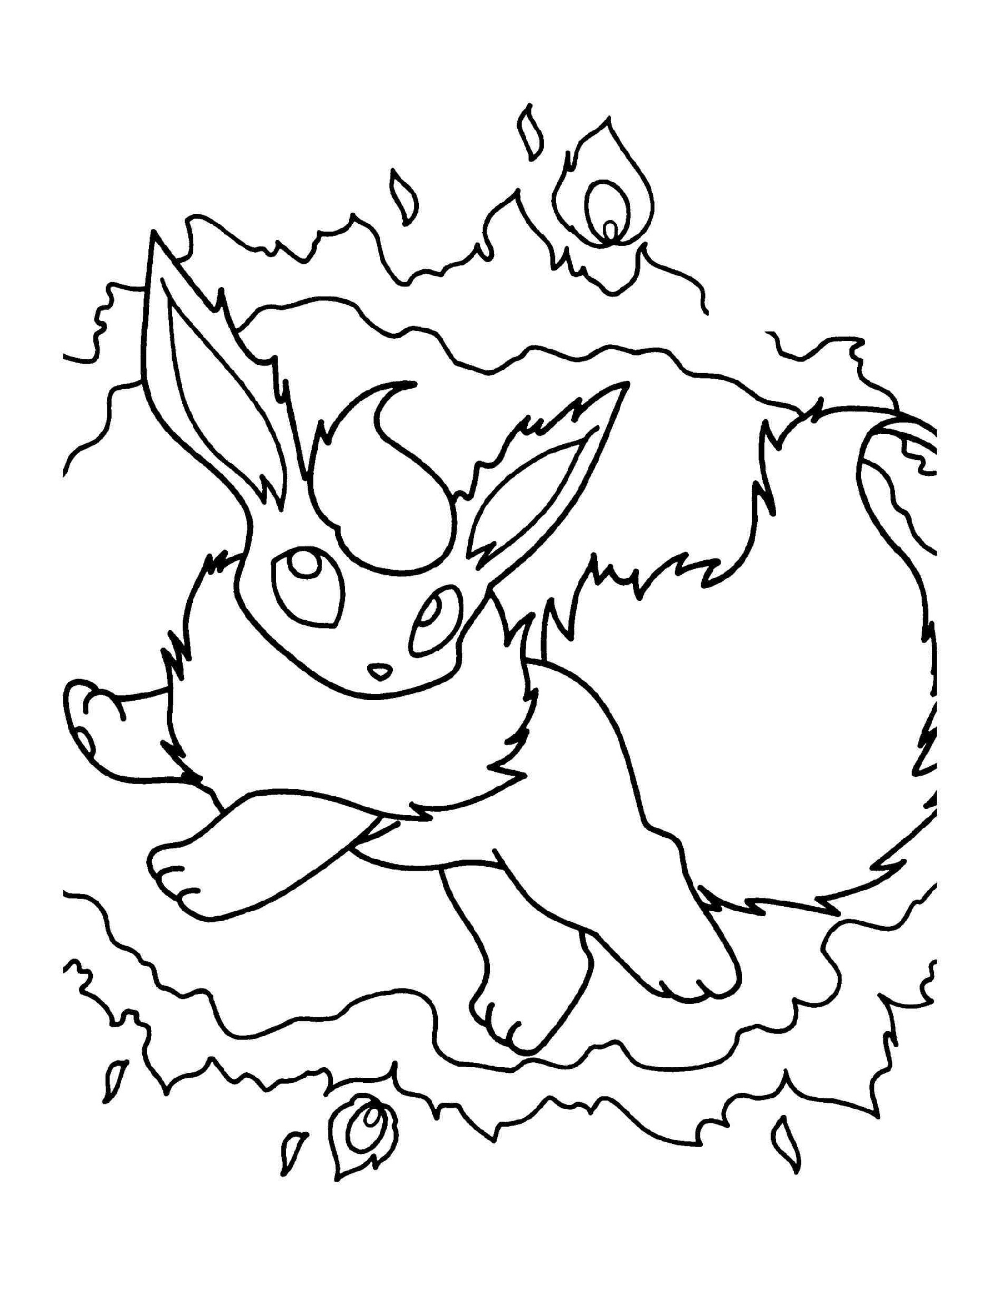 Flareon Coloring Pages Free Download Educative Printable Pokemon Coloring Pages Pokemon Coloring Halloween Coloring Pages